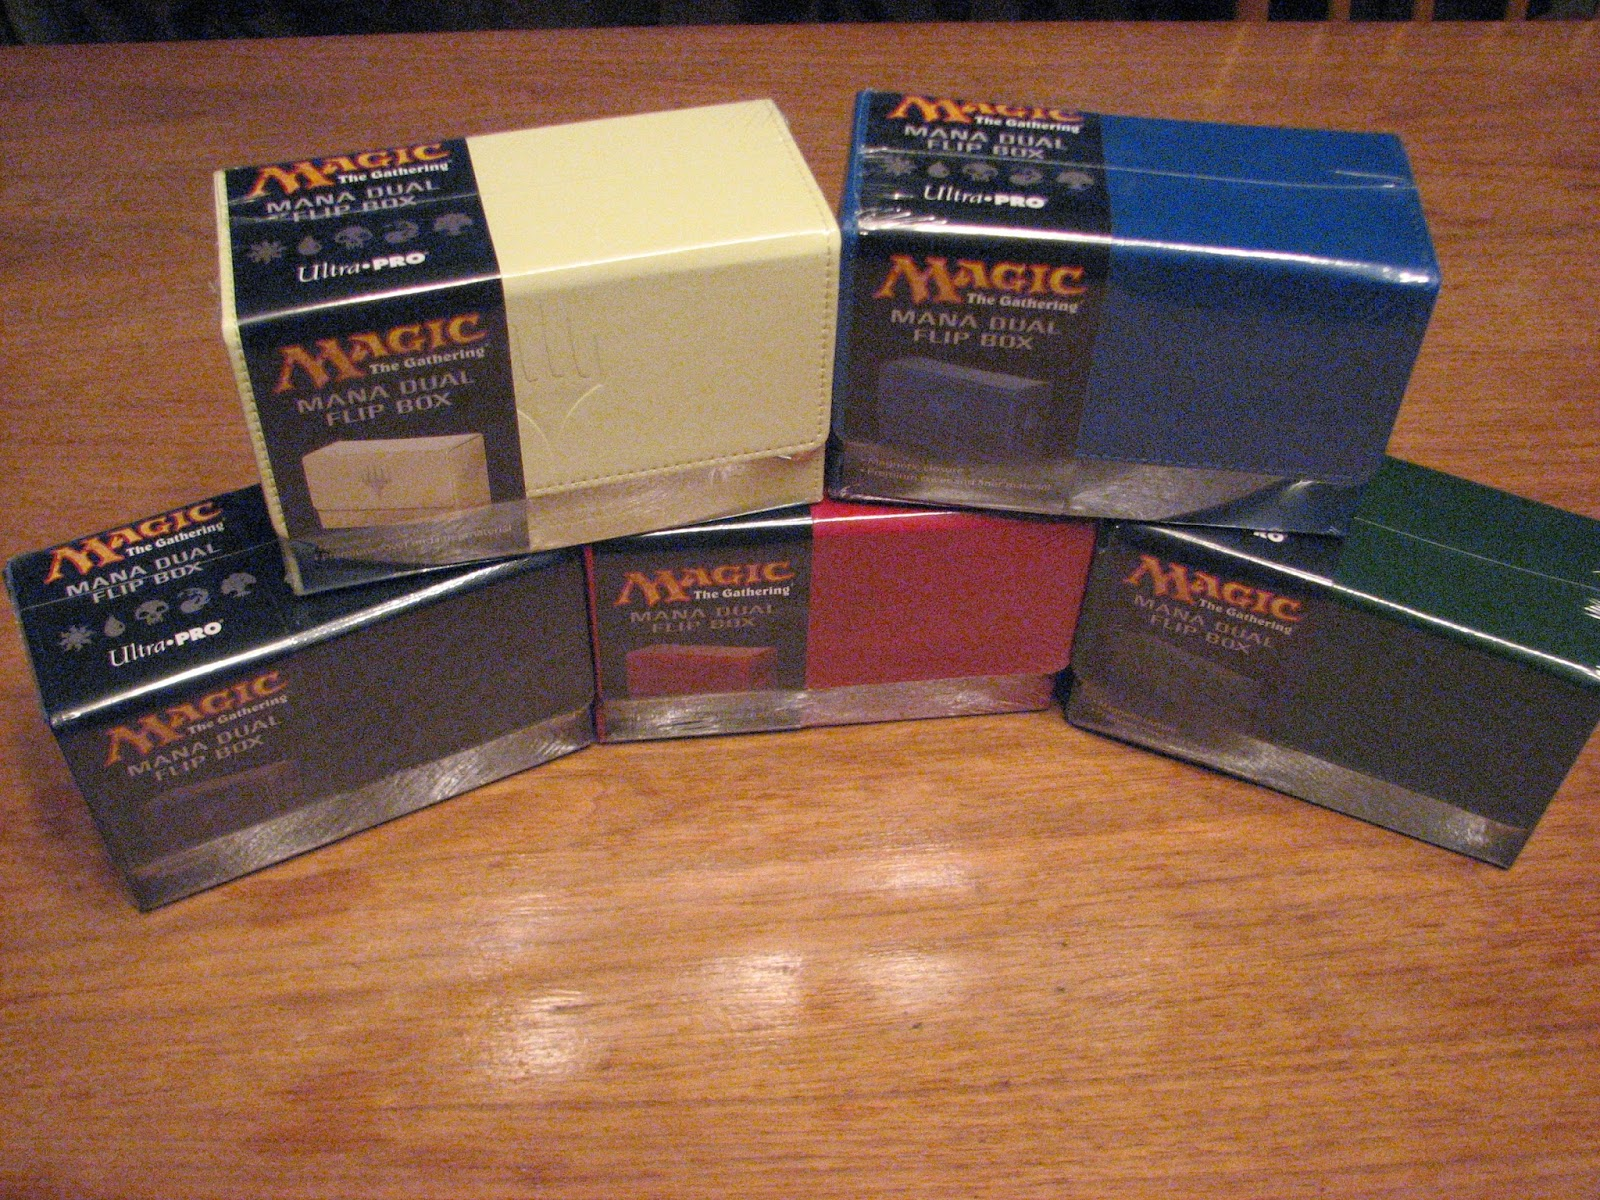 Mtg realm ultra pro dual flip box card sleeves playmats and portfolio we want to yatter to you about another product just hitting the market presently mtg dual flip boxes biocorpaavc